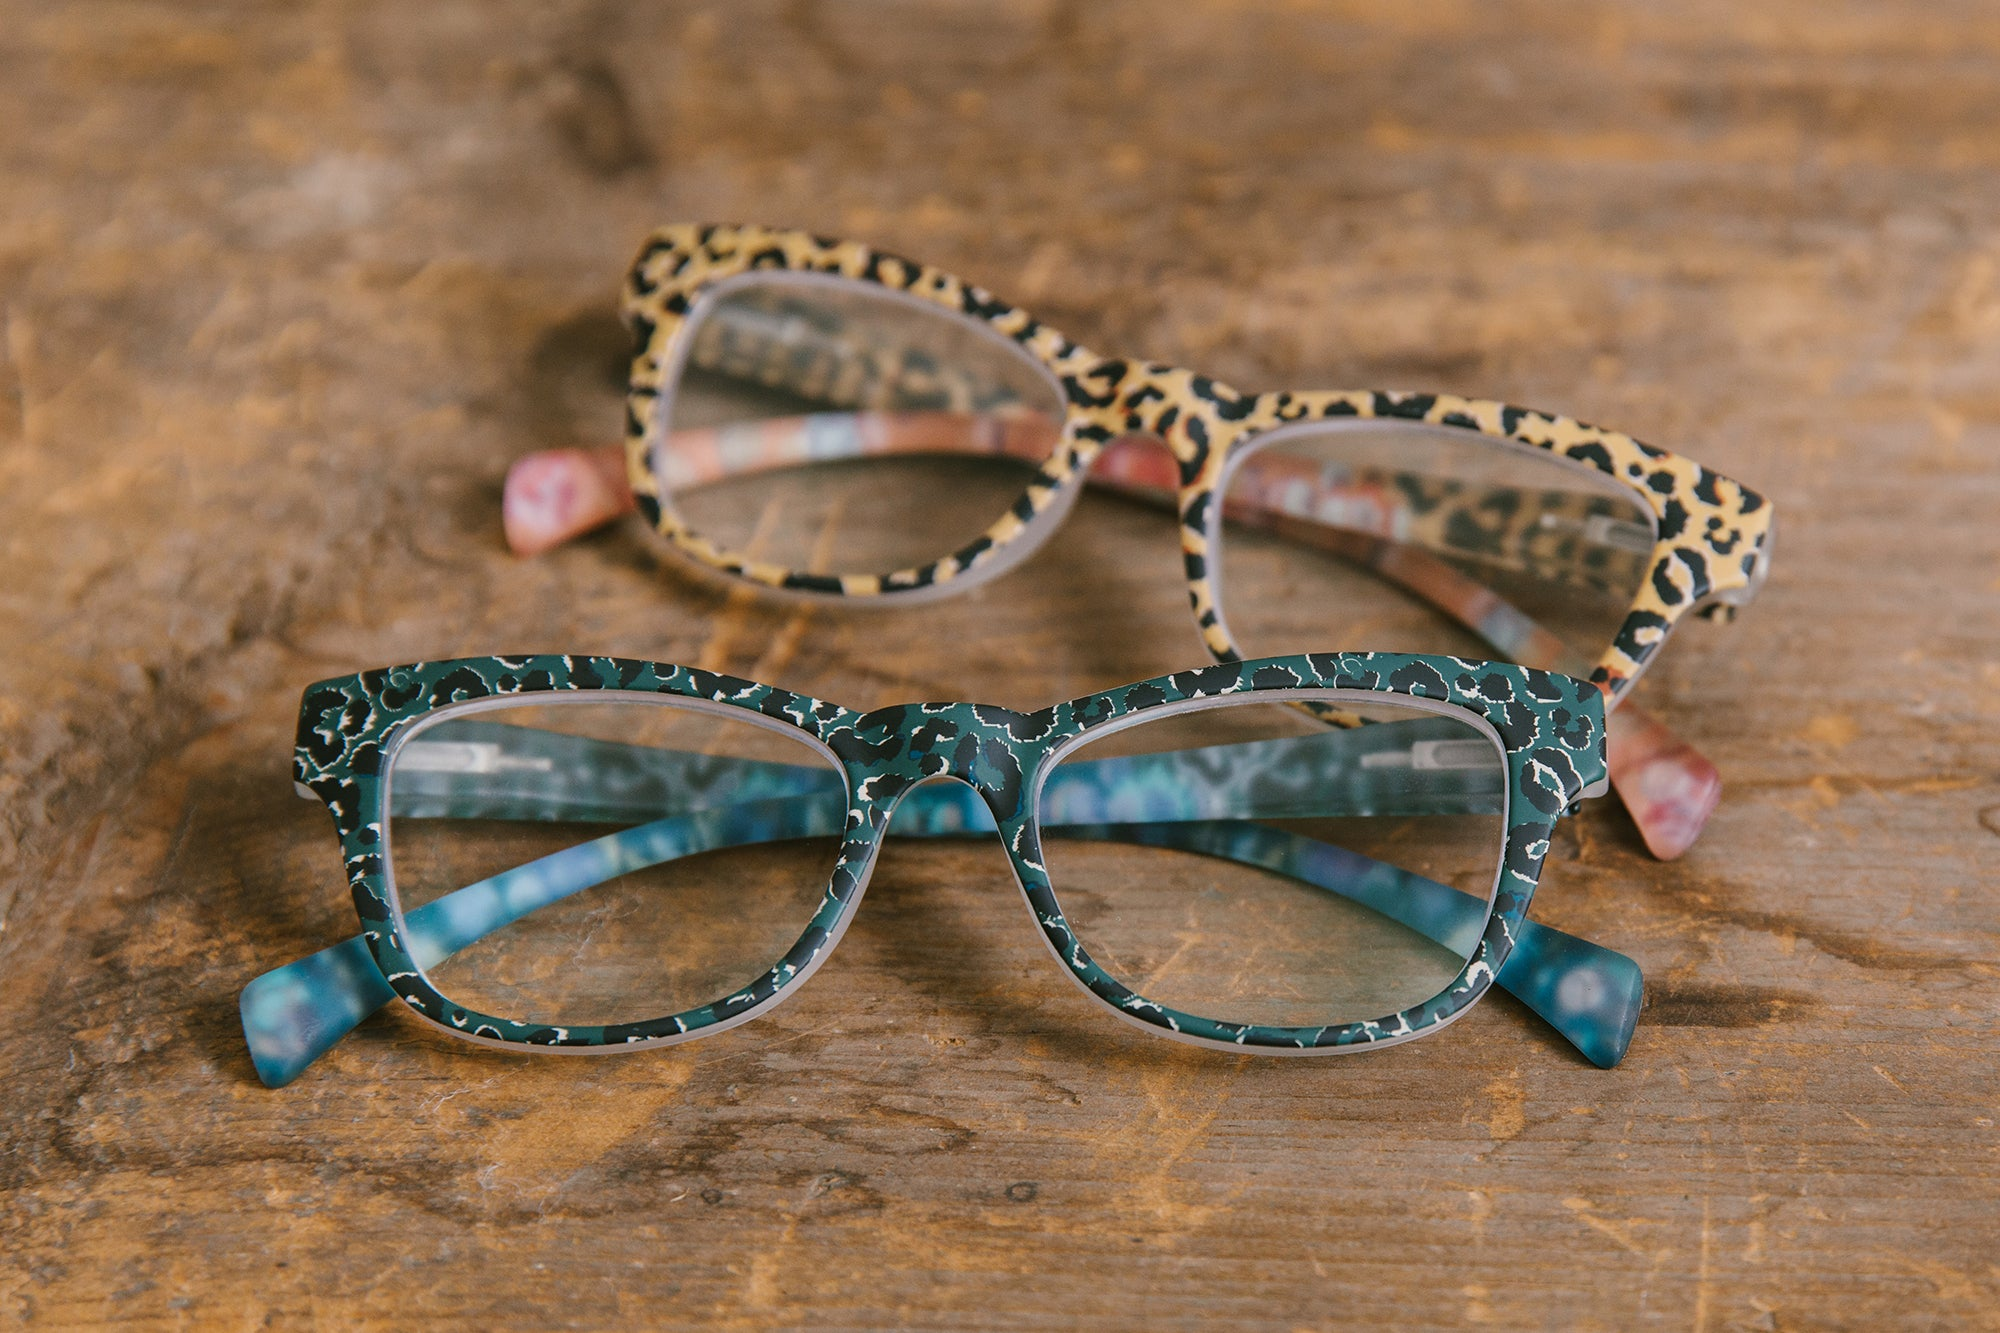 Peepers blue light reading glasses sitting on wood table